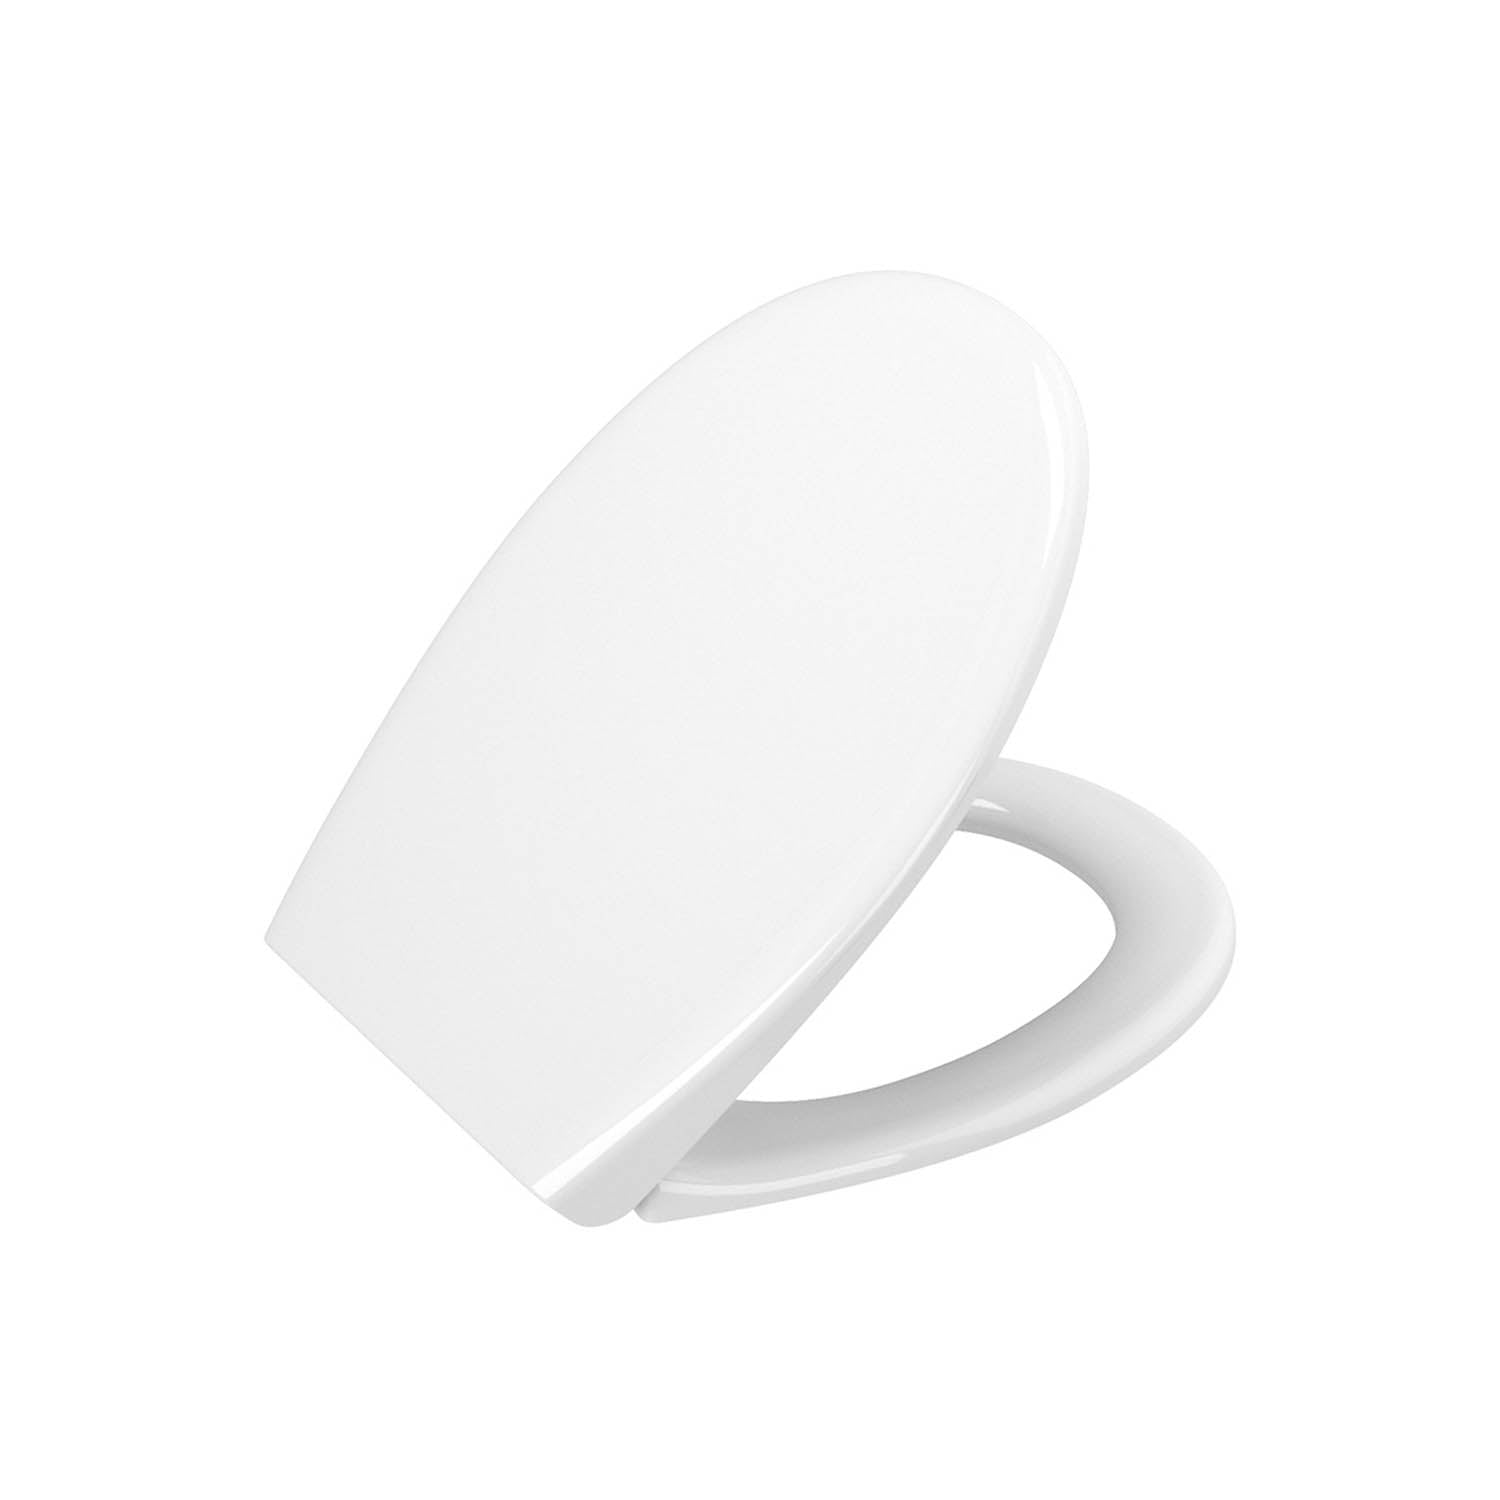 Consilio Toilet Seat and Cover on a white background